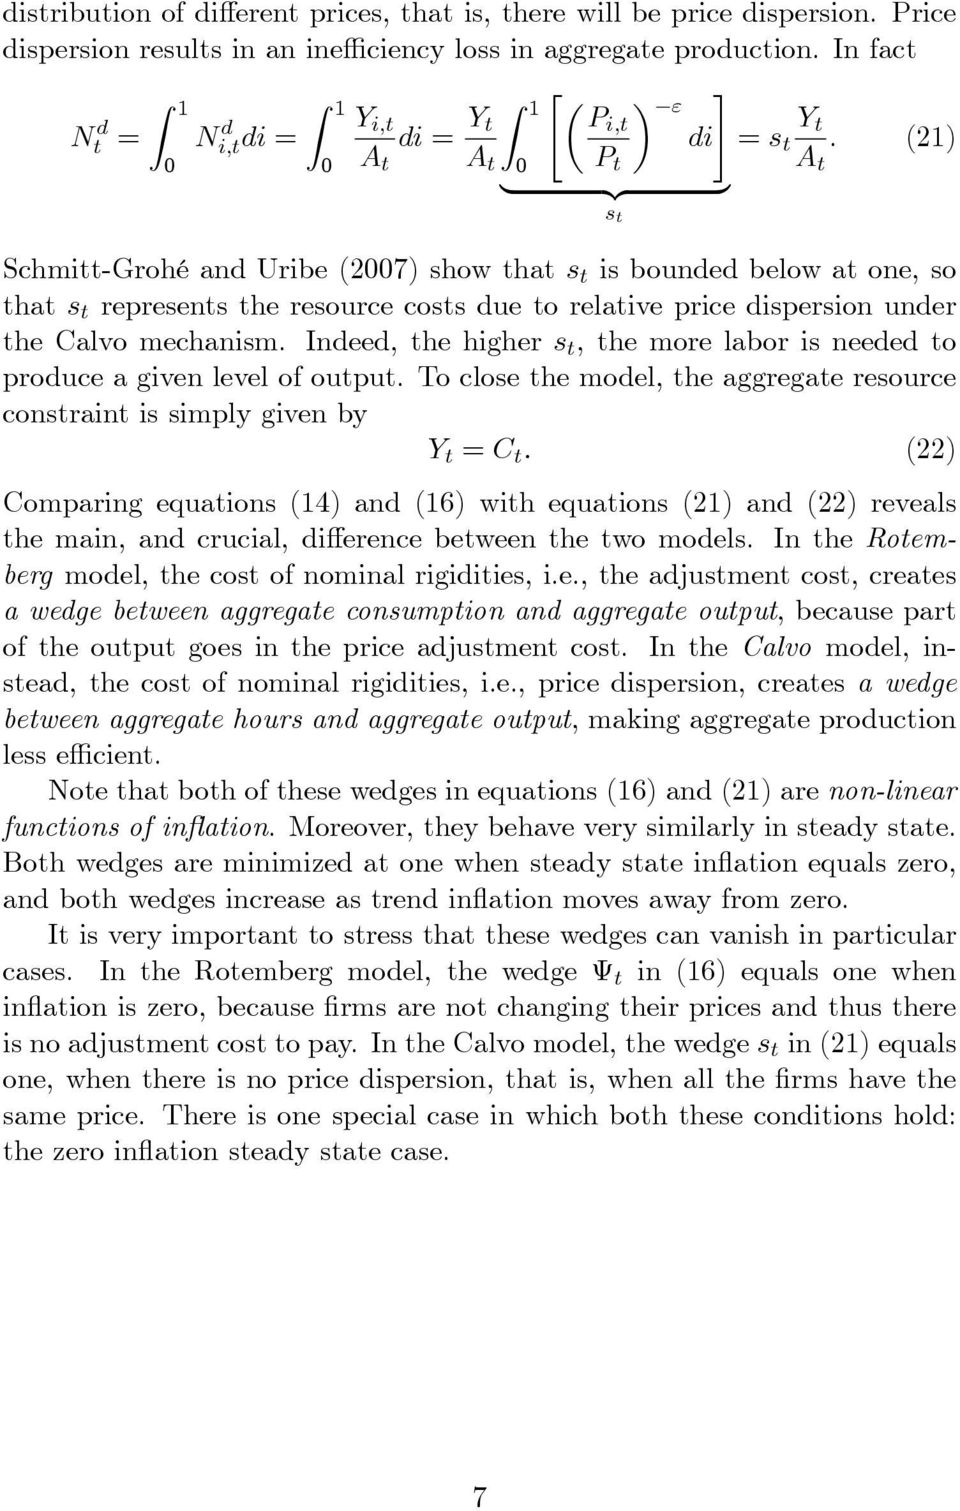 () A t A t P t A t {z } s t Schmitt-Grohé and Uribe (7) show that s t is bounded below at one, so that s t represents the resource costs due to relative price dispersion under the Calvo mechanism.